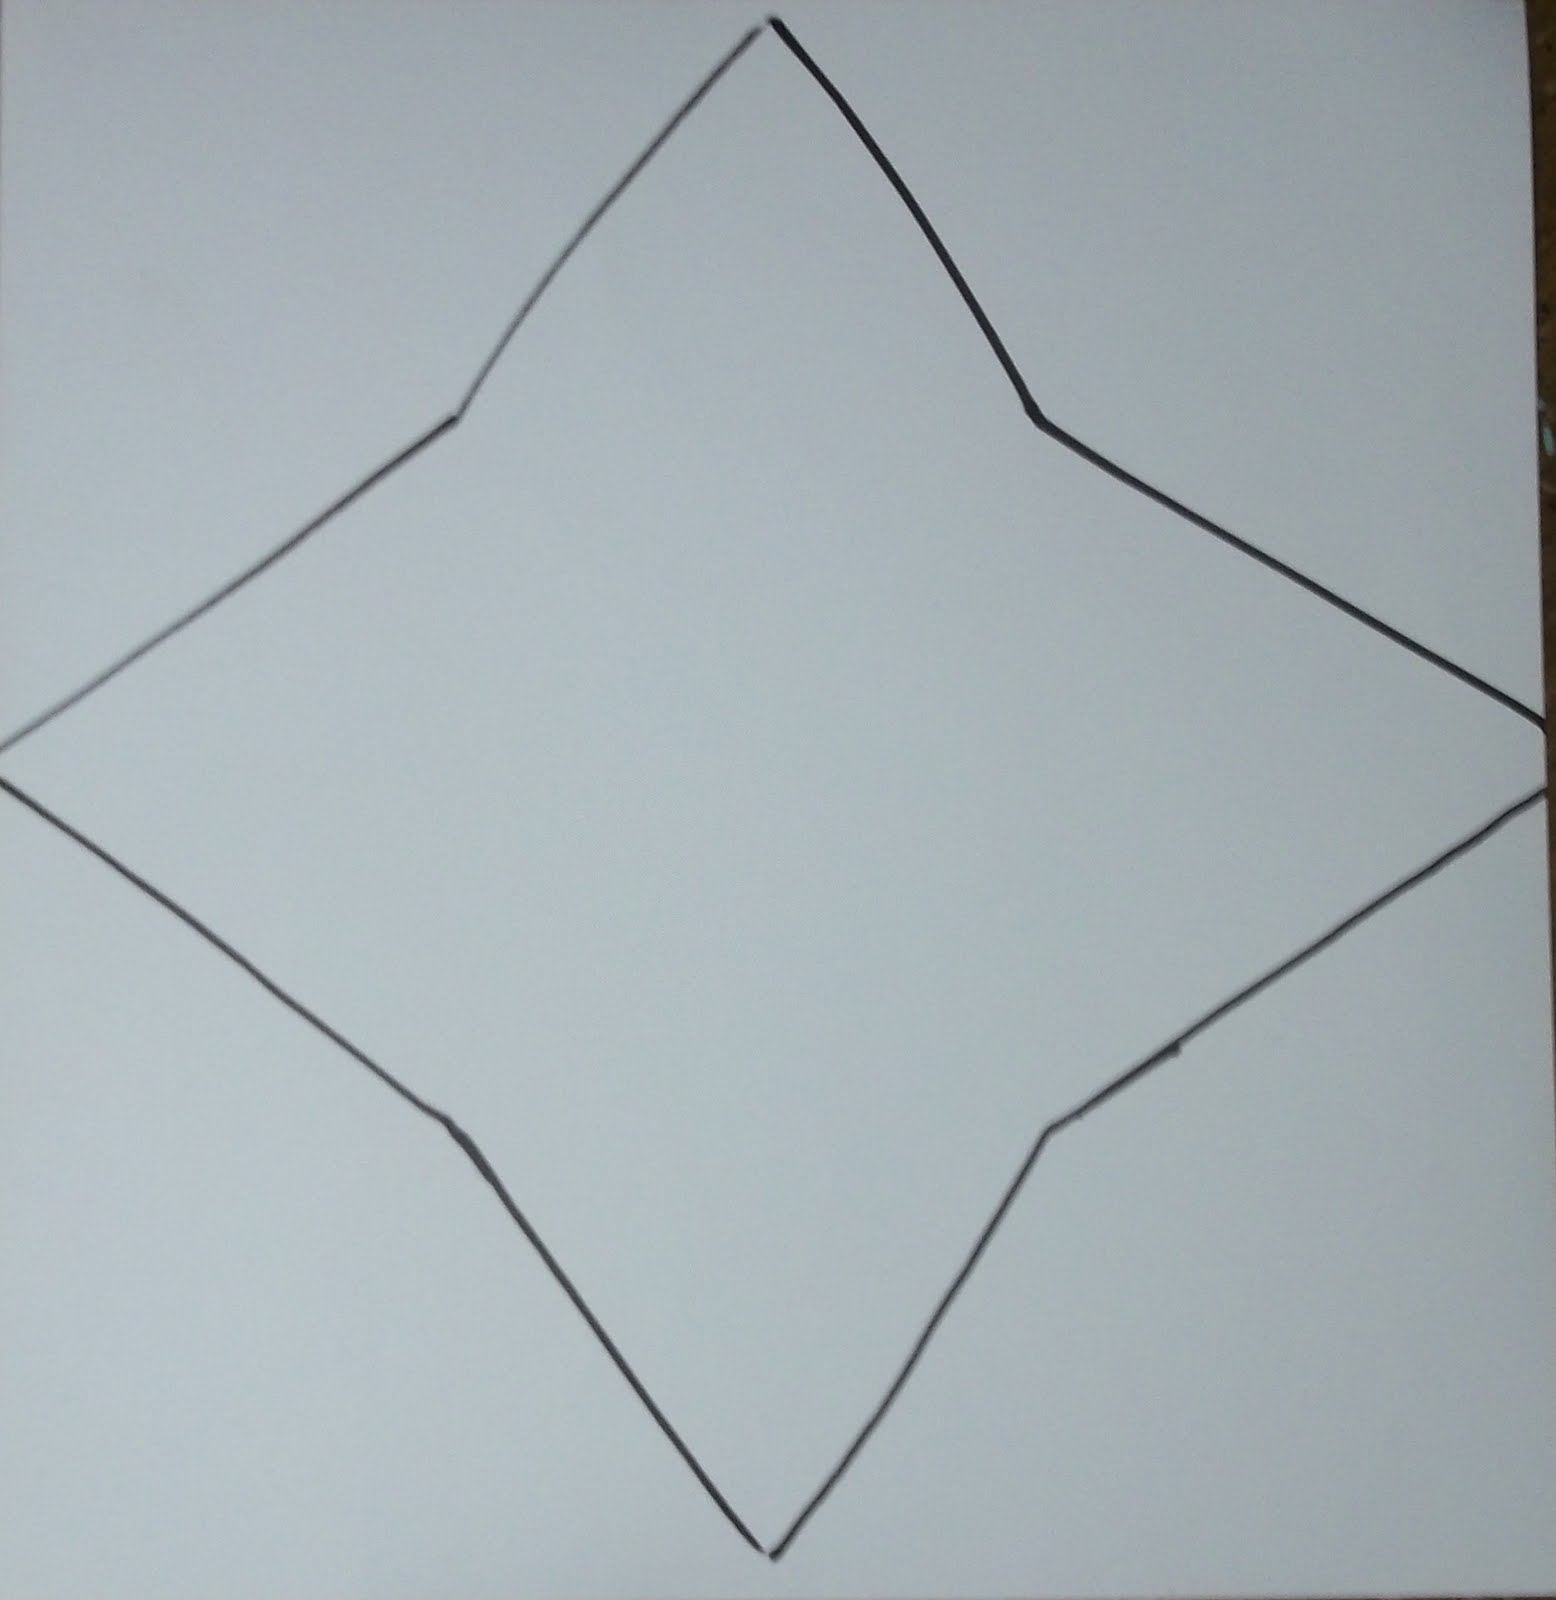 Scrapbook paper envelope template - Once Your Template Is Ready Lay It Flat On Your Scrapbook Paper And Trace It Out